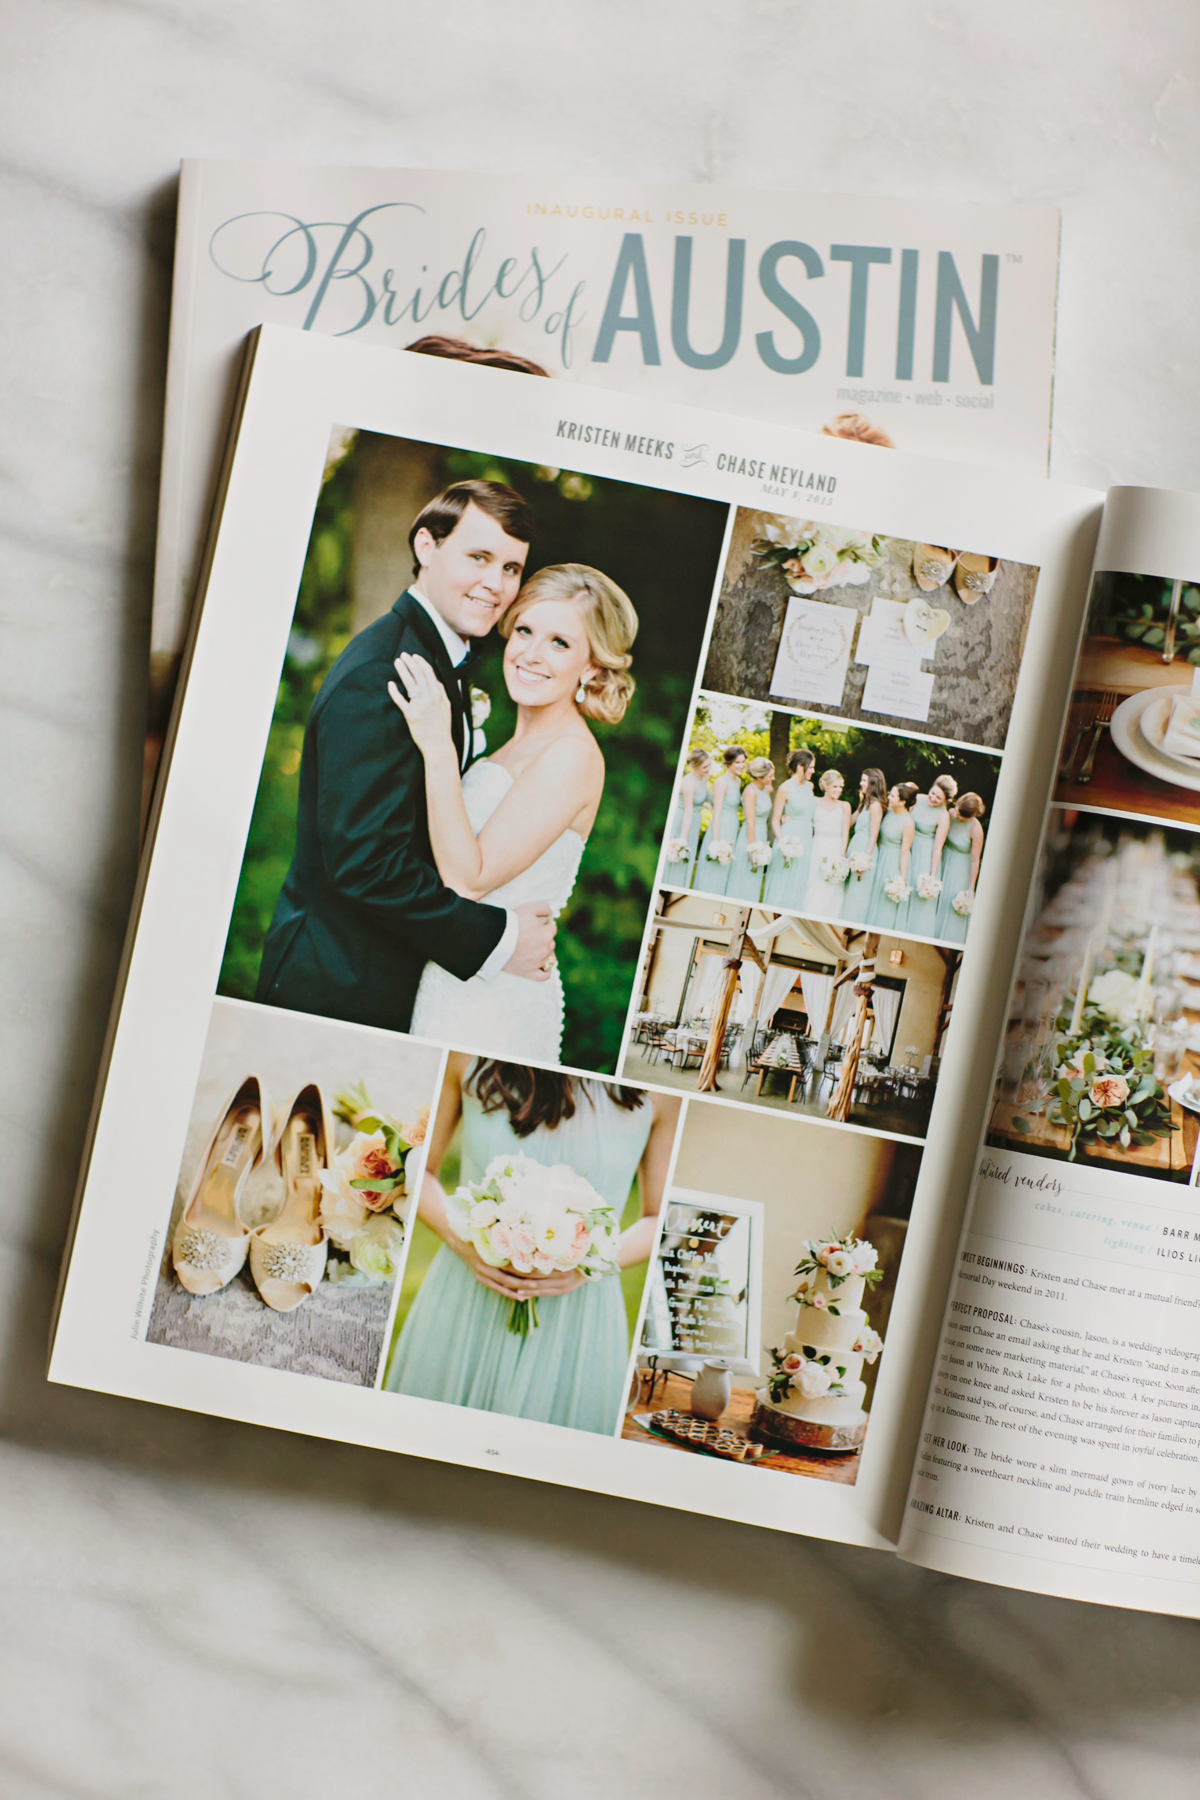 Brides-of-Austin_Press-Web